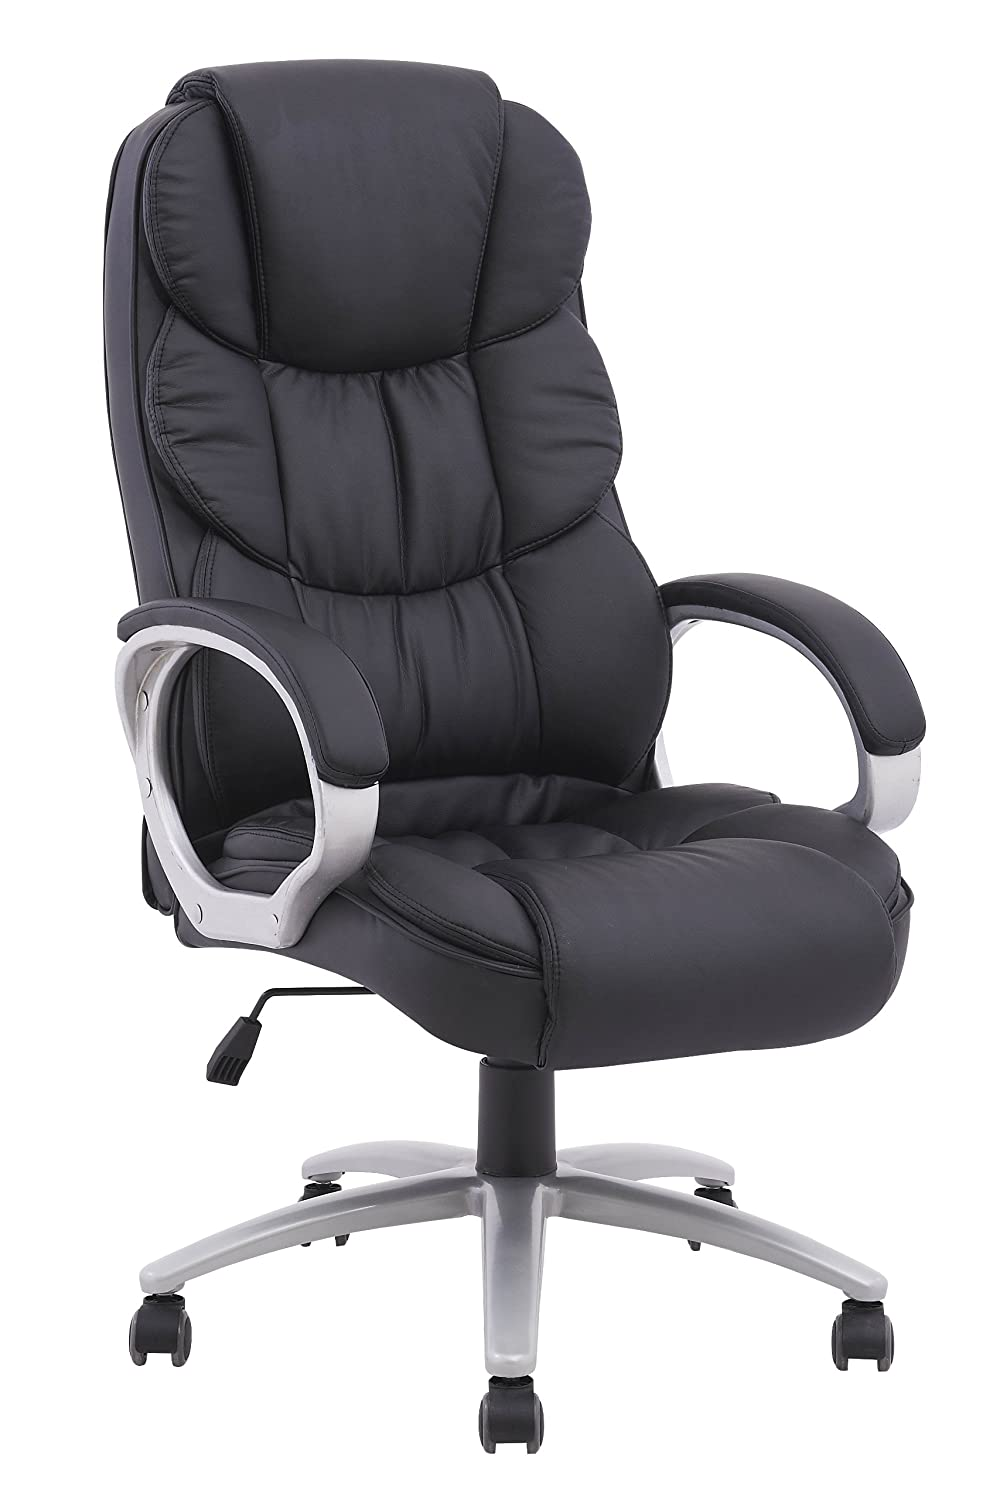 swivel office home writing ergonomic study ehggaadggeie student item chair learning computer simple modern